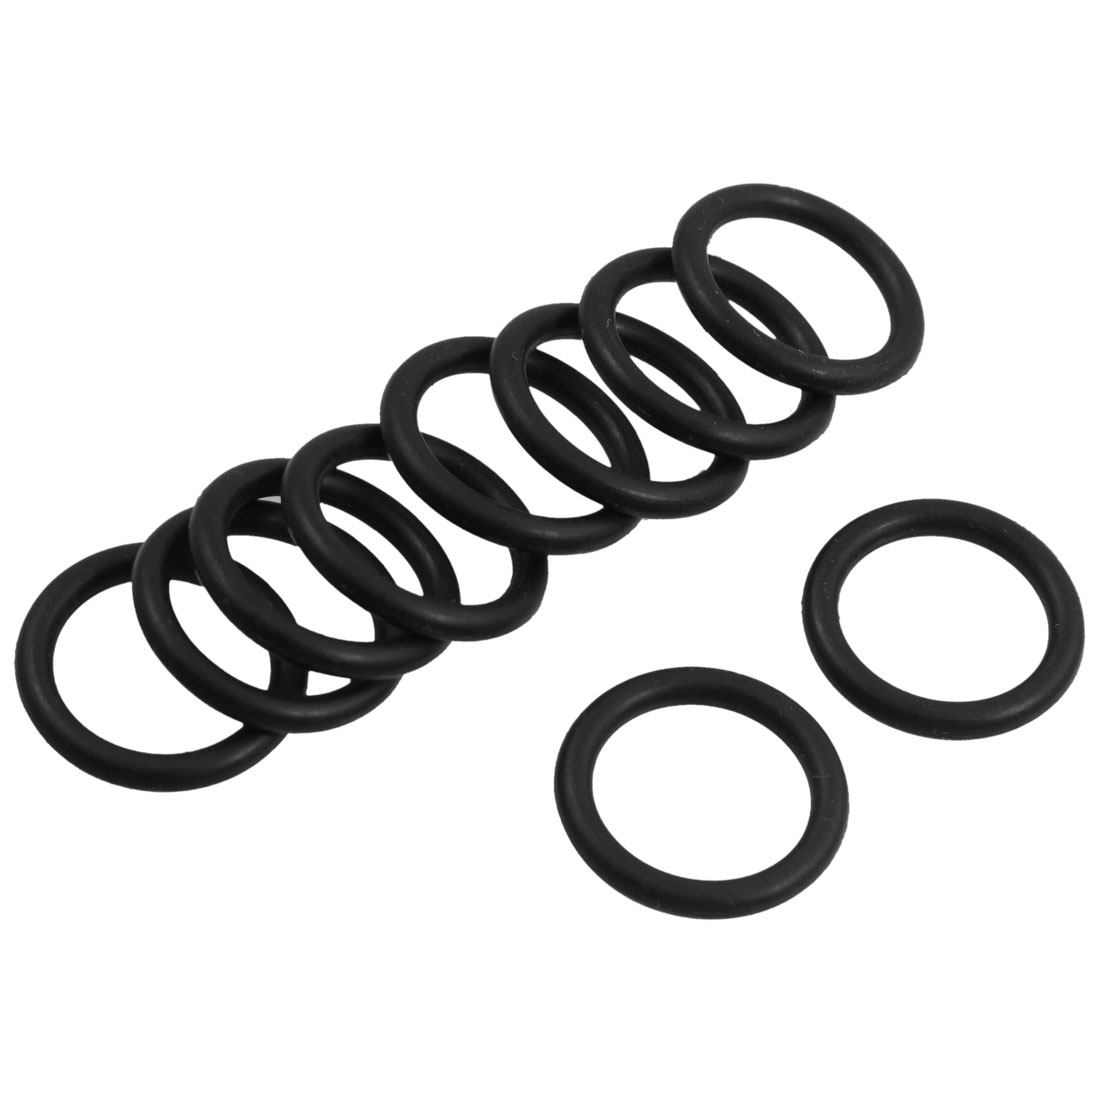 10 Pcs 18mm x 2.4mm Rubber Sealing Washers Oil Filter O Rings Black